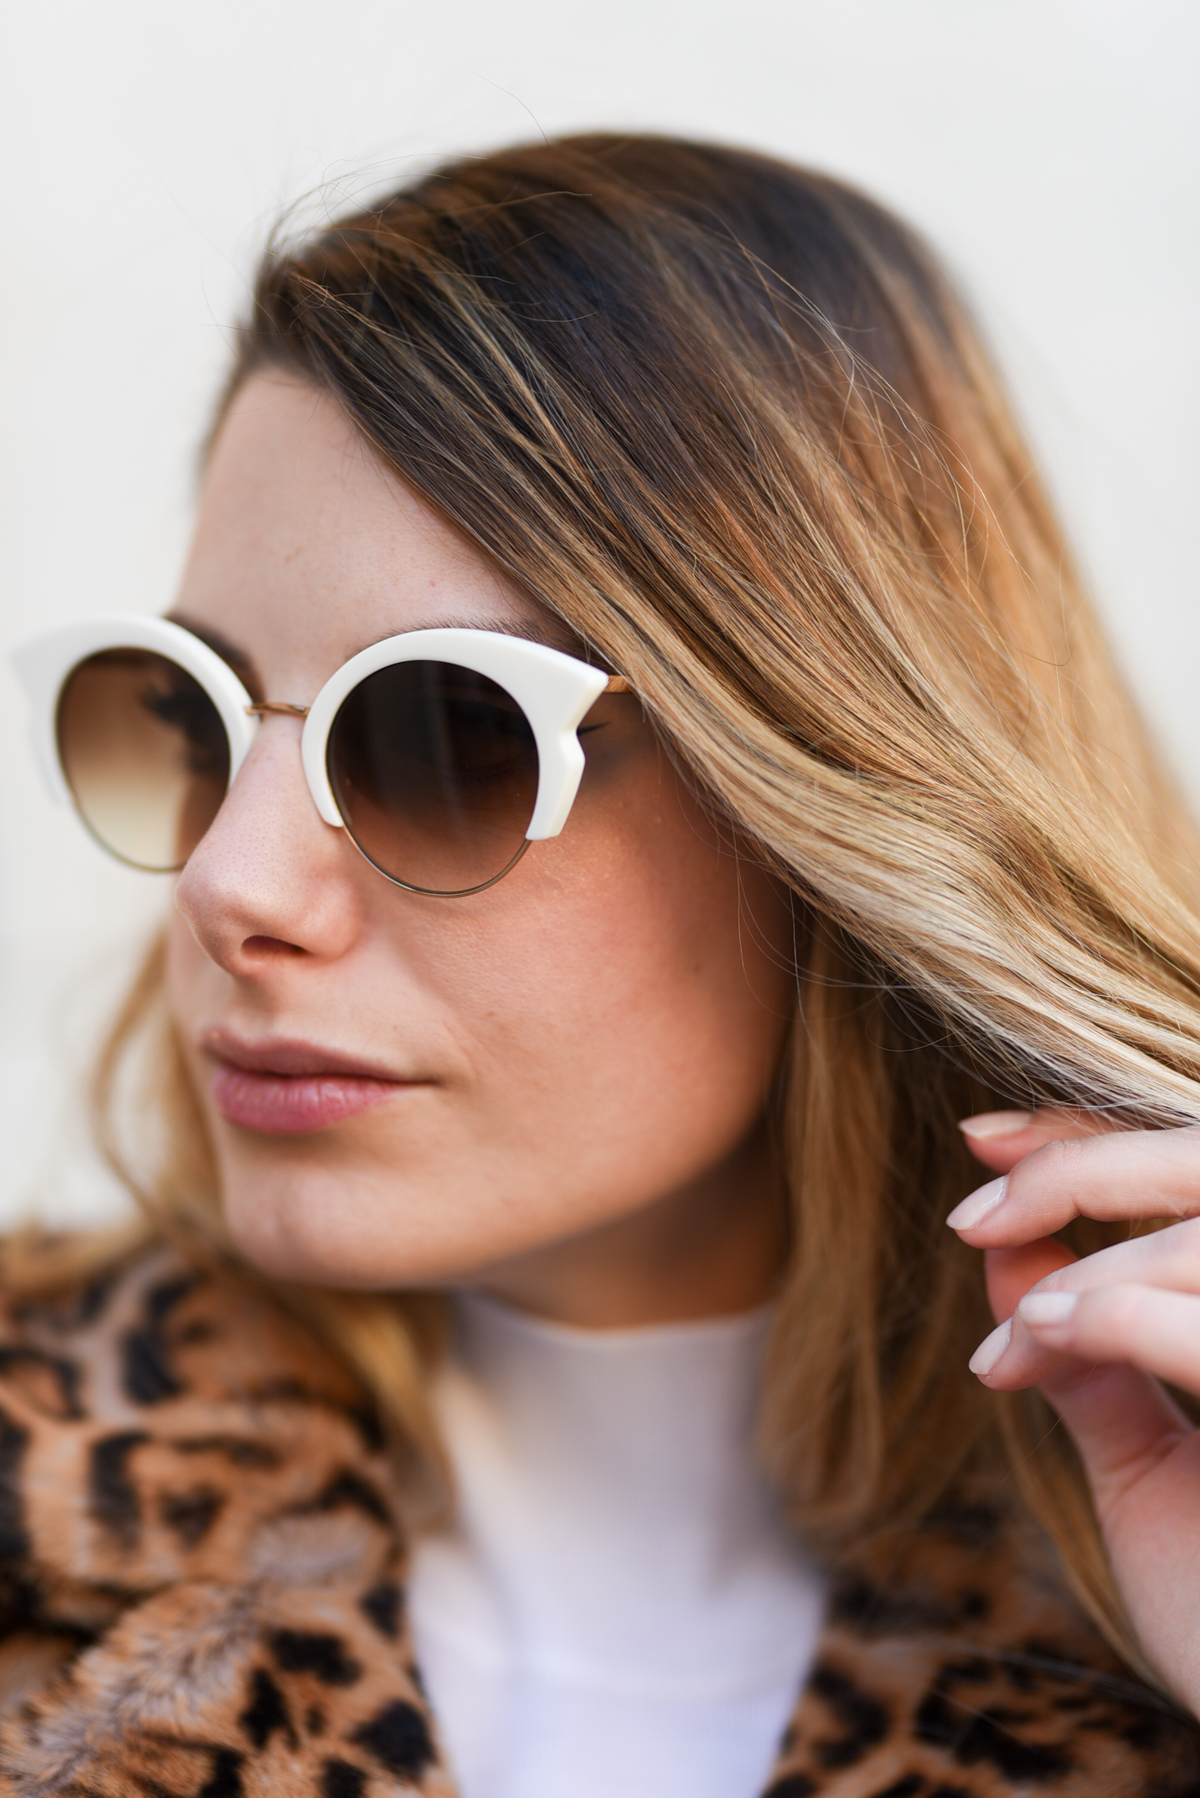 giulia de martin woow sunglasses sunnies occhiali da sole fall winter 2019 2020 behidn my glasses teal green blue occhiali da vista eyewear blog influencer -1